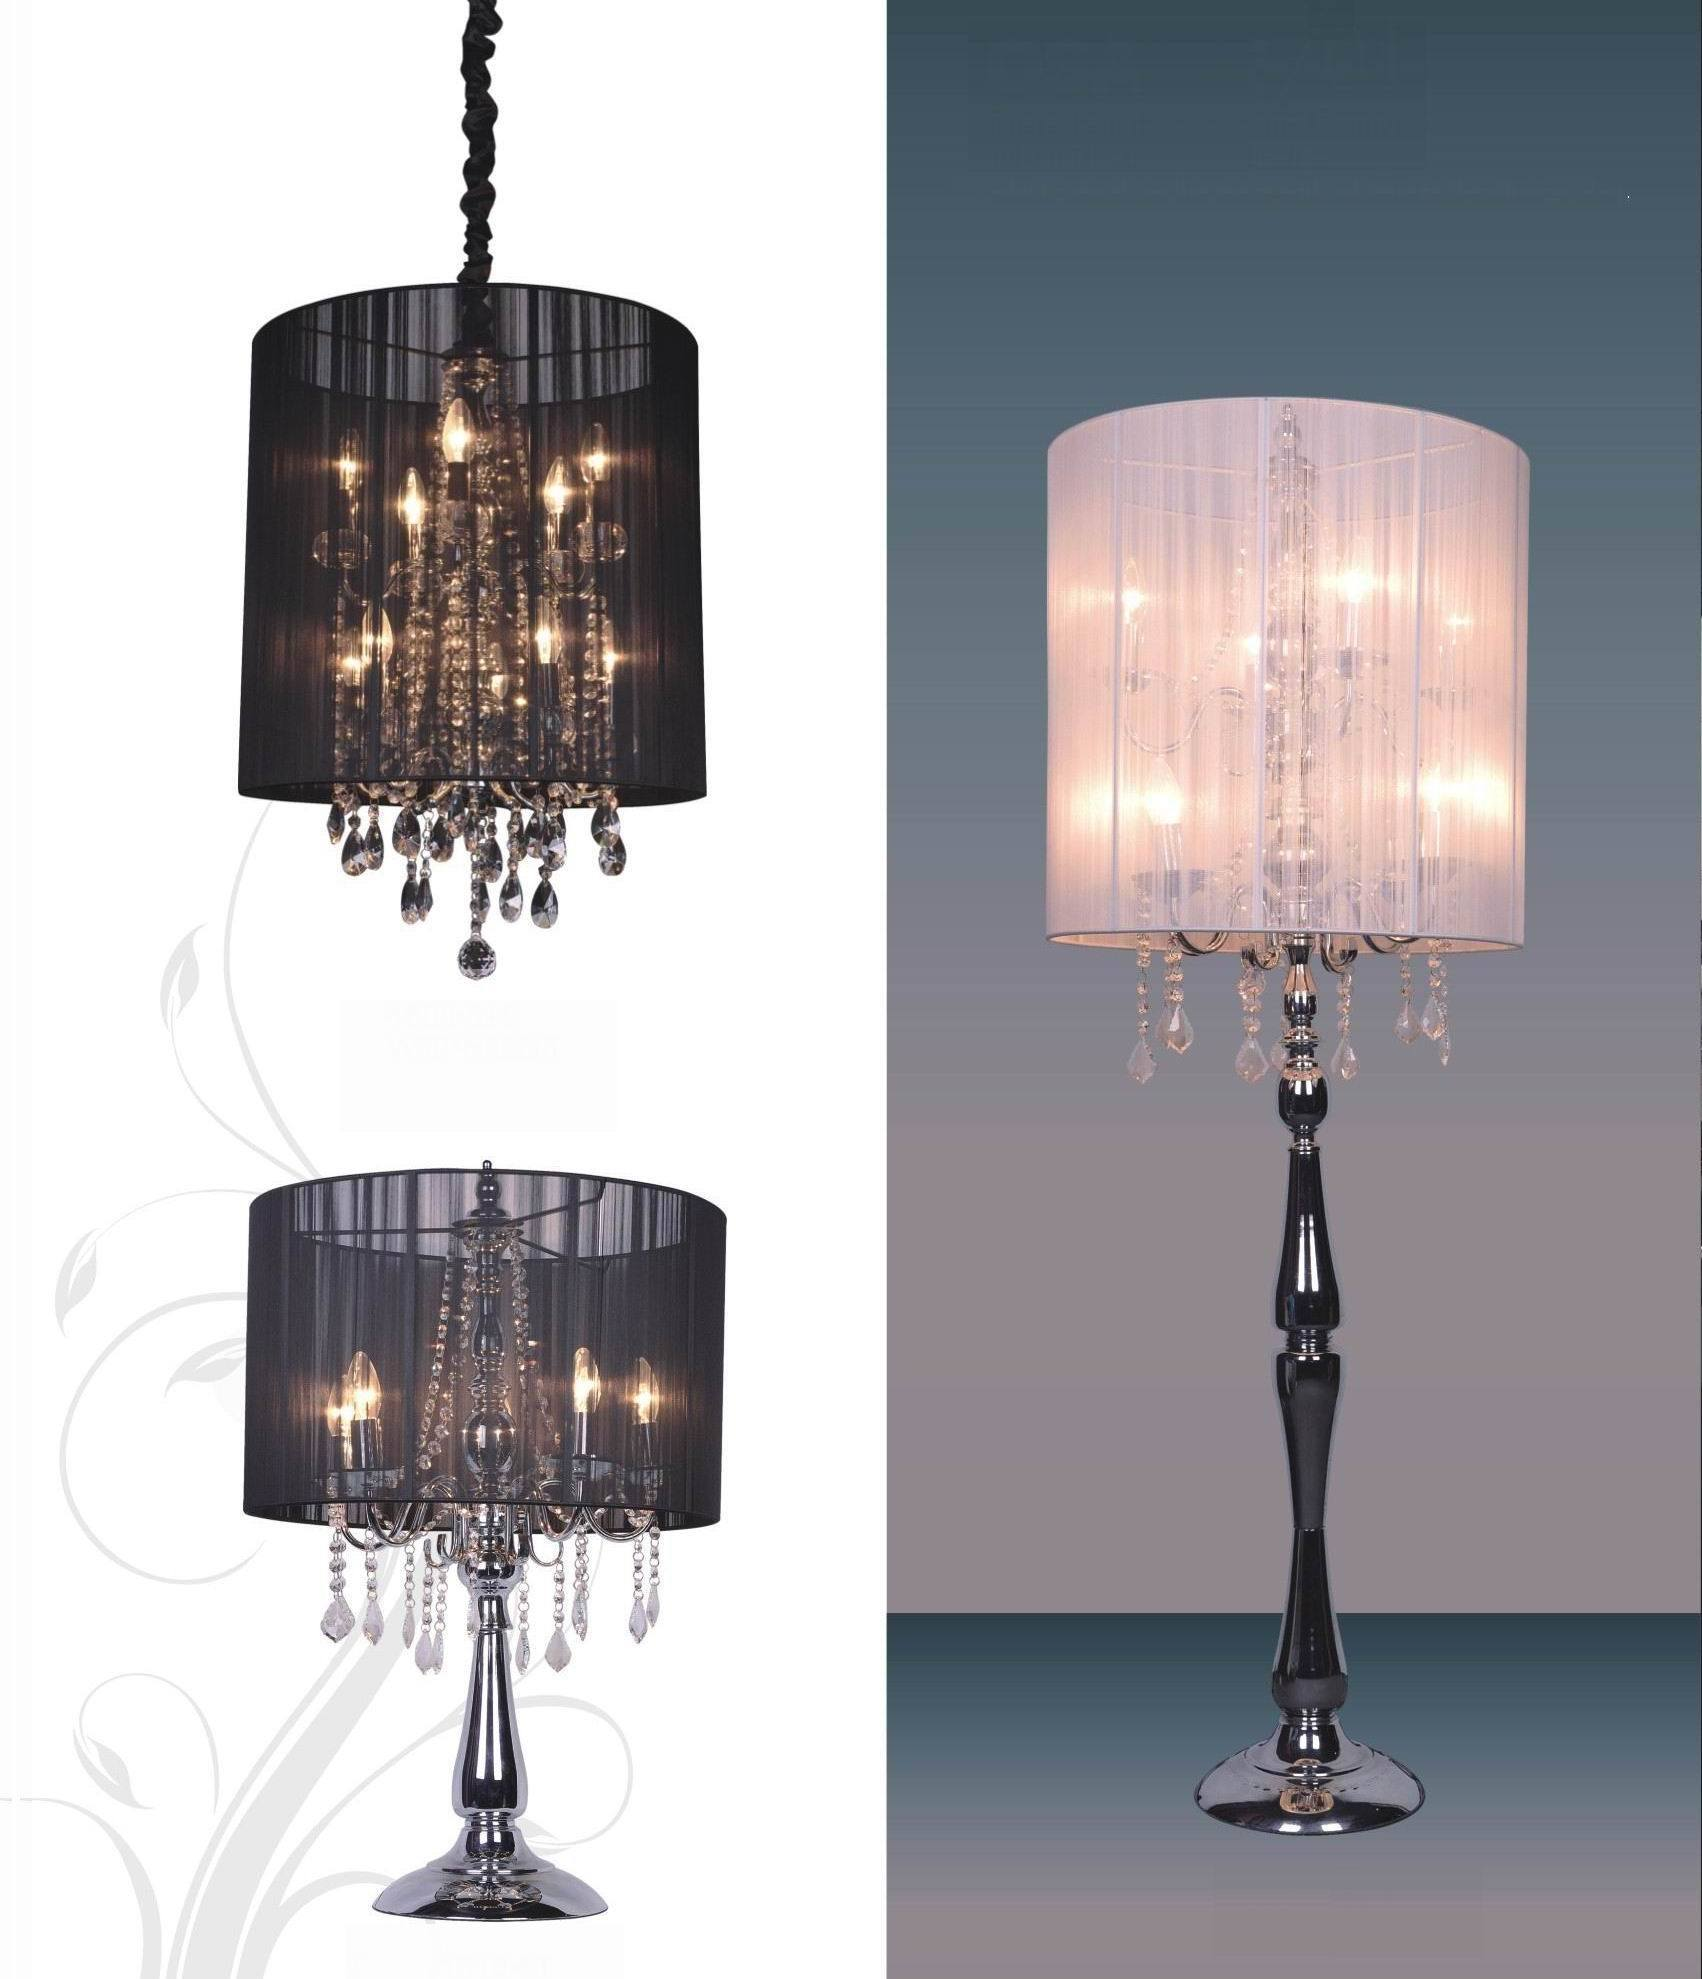 Crystal chandelier floor lamp in Floor Lamps - Compare Prices